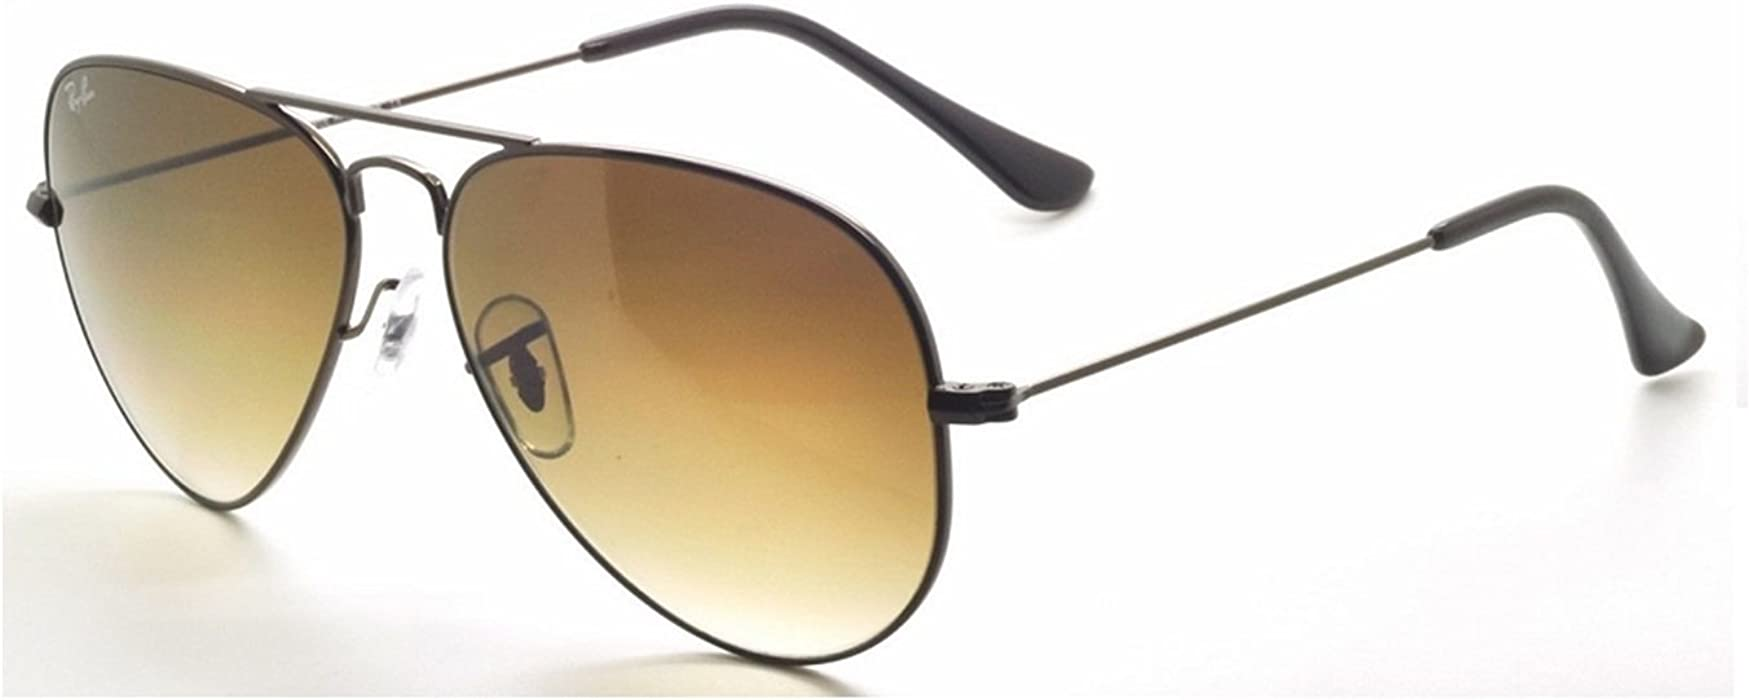 d0bad8ed381164 New Ray Ban RB3025 014 51 Aviator Brown Brown Gradient Lens 55mm Sunglasses